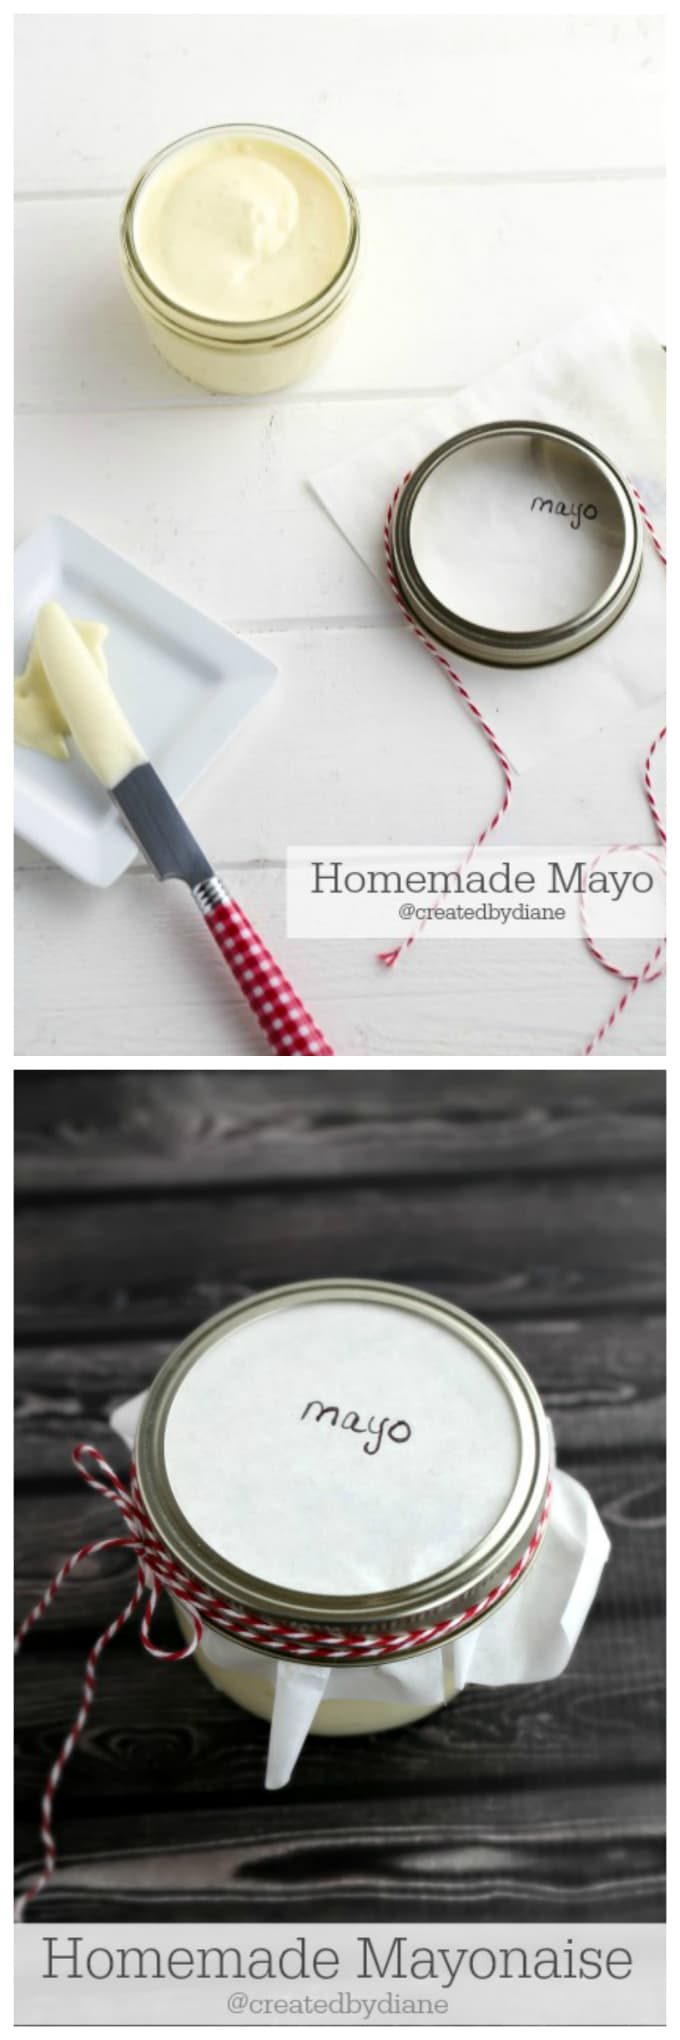 homemade mayo, mayonnaise recipe @createdbydiane